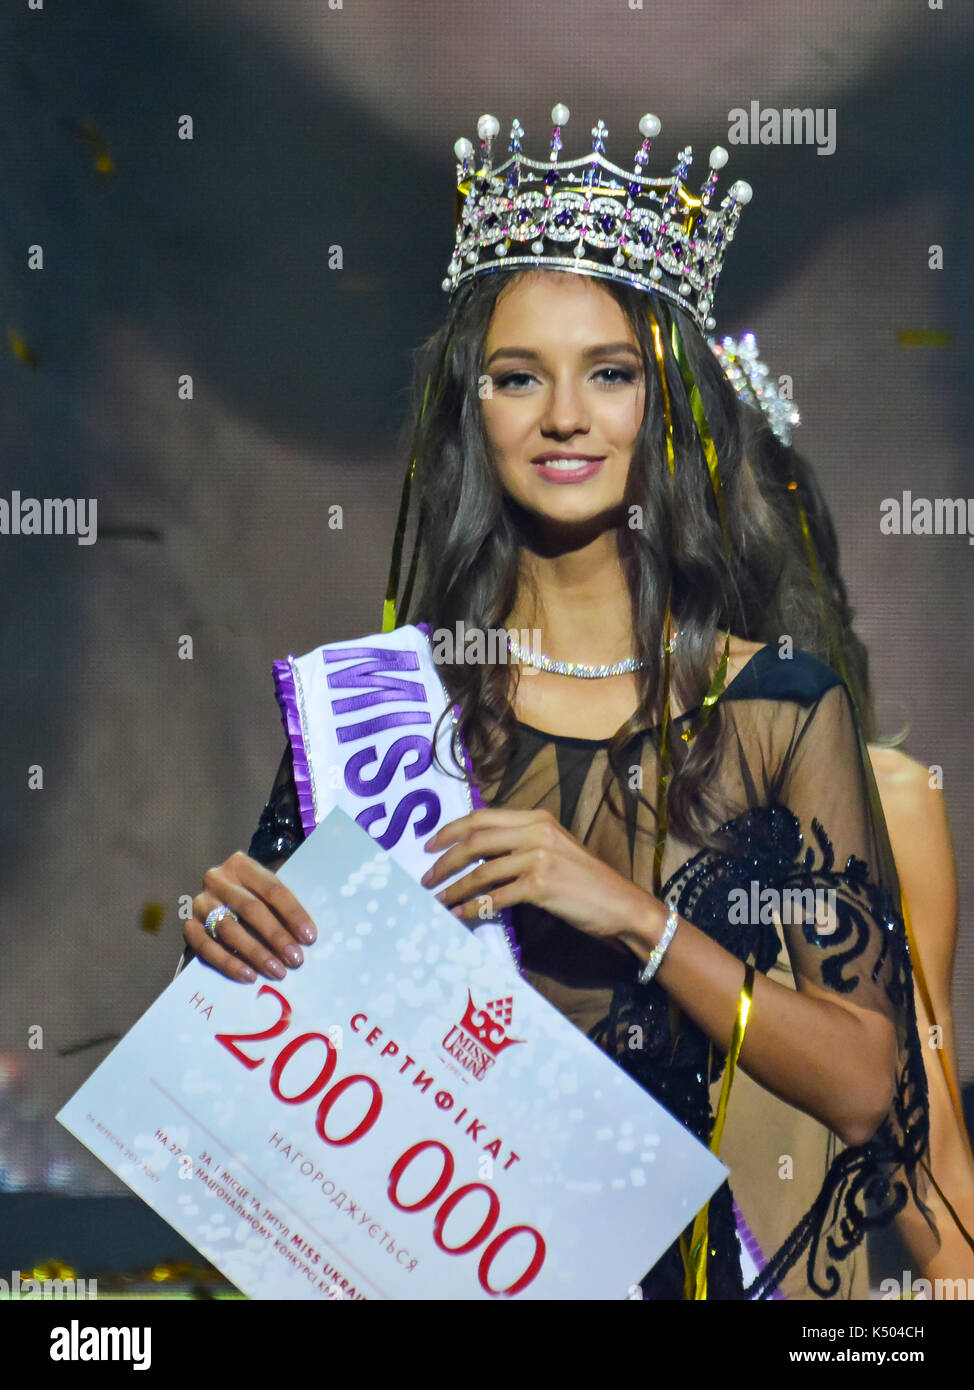 Miss Ukraine 2017 Stock Photos & Miss Ukraine 2017 Stock Images - Alamy